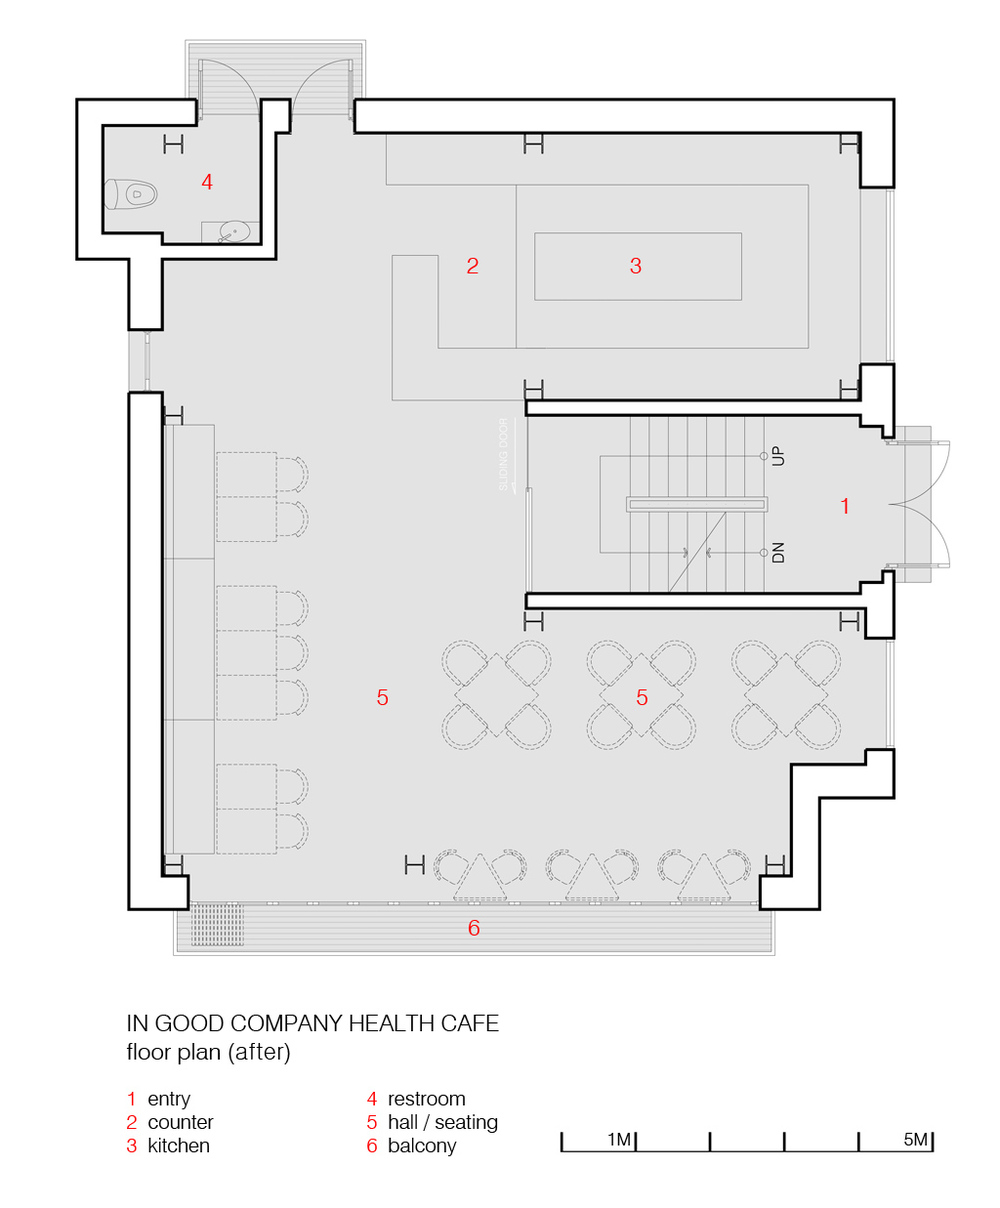 hjl studio - in good company floorplan